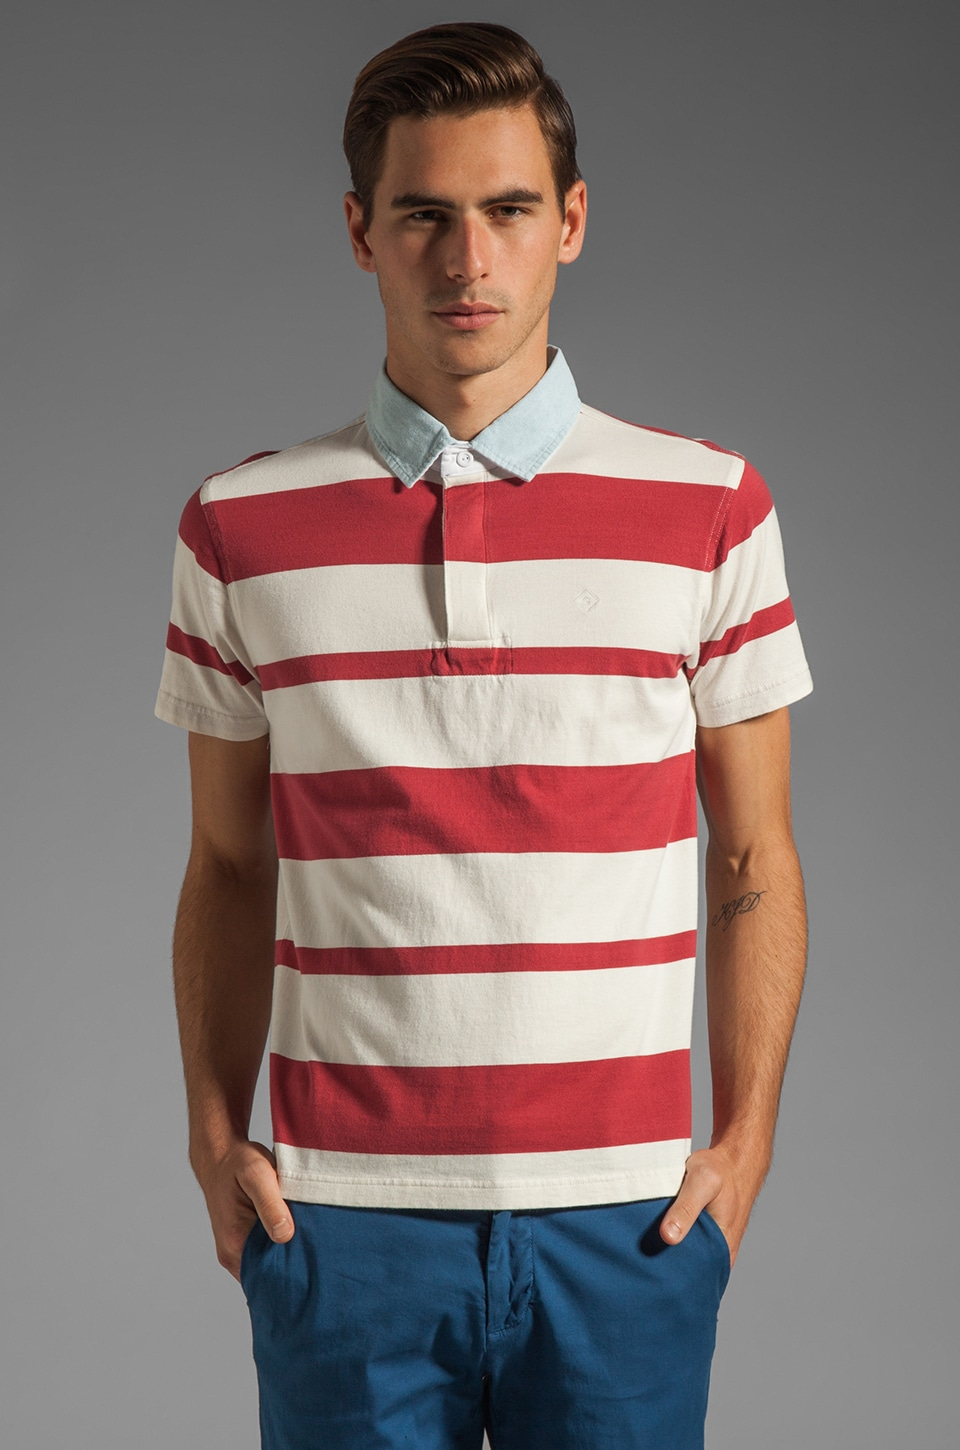 GANT Rugger Awning Stripe Heavy Rugger Polo in Red/White